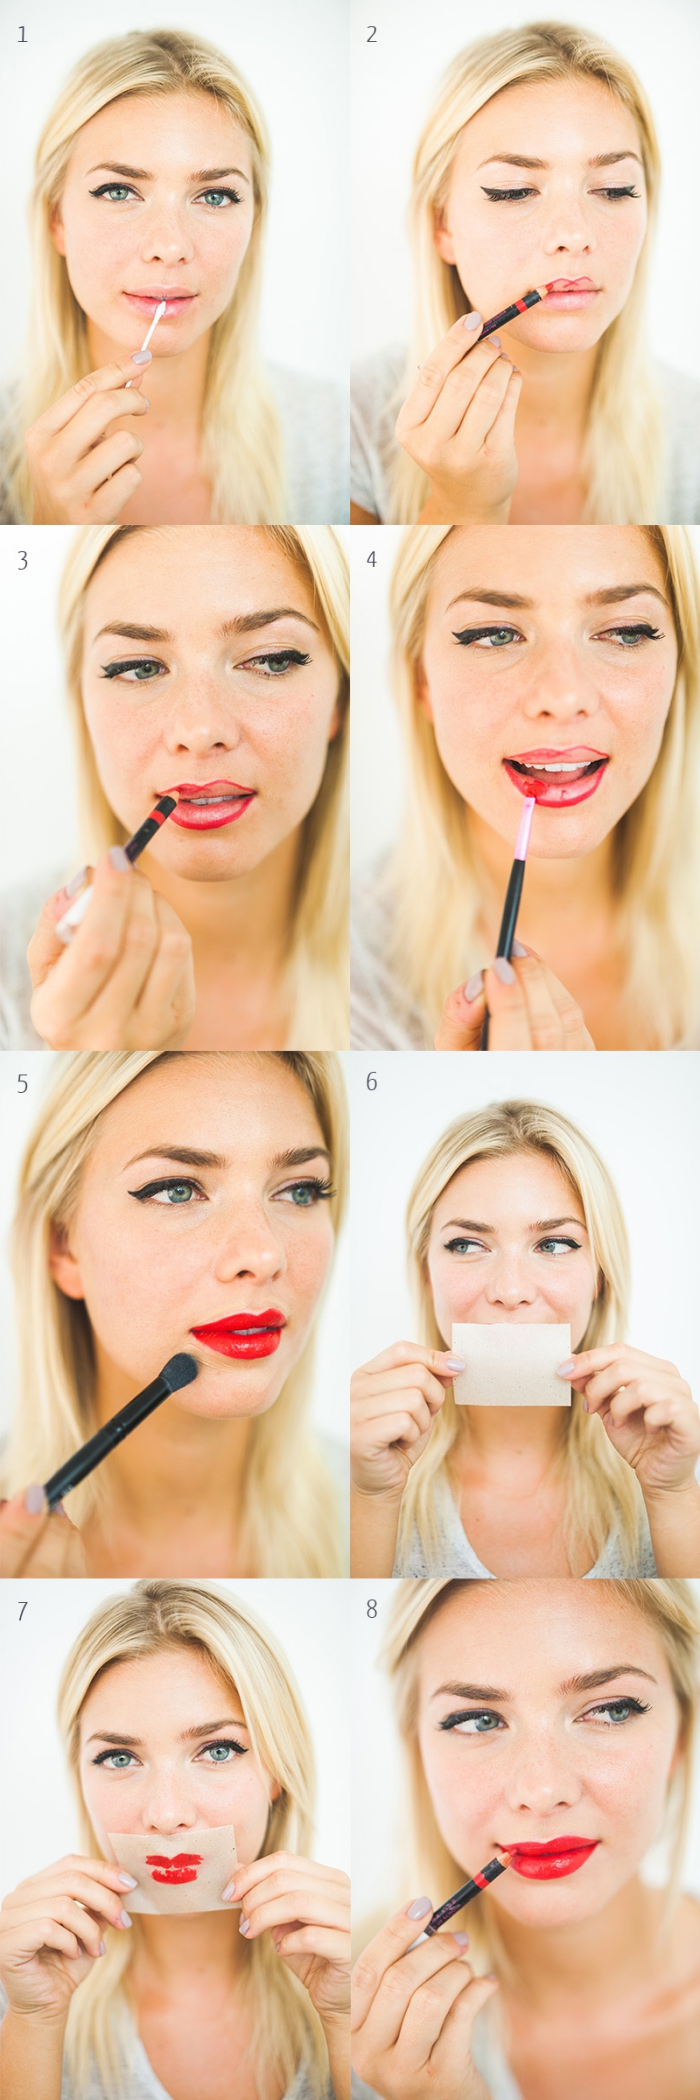 eight photos explaining how to apply red lipstick, holiday makeup, slim blonde woman, with balck eyeliner, applying cream on her lips, outlining them with a pencil, and putting on red lipstick